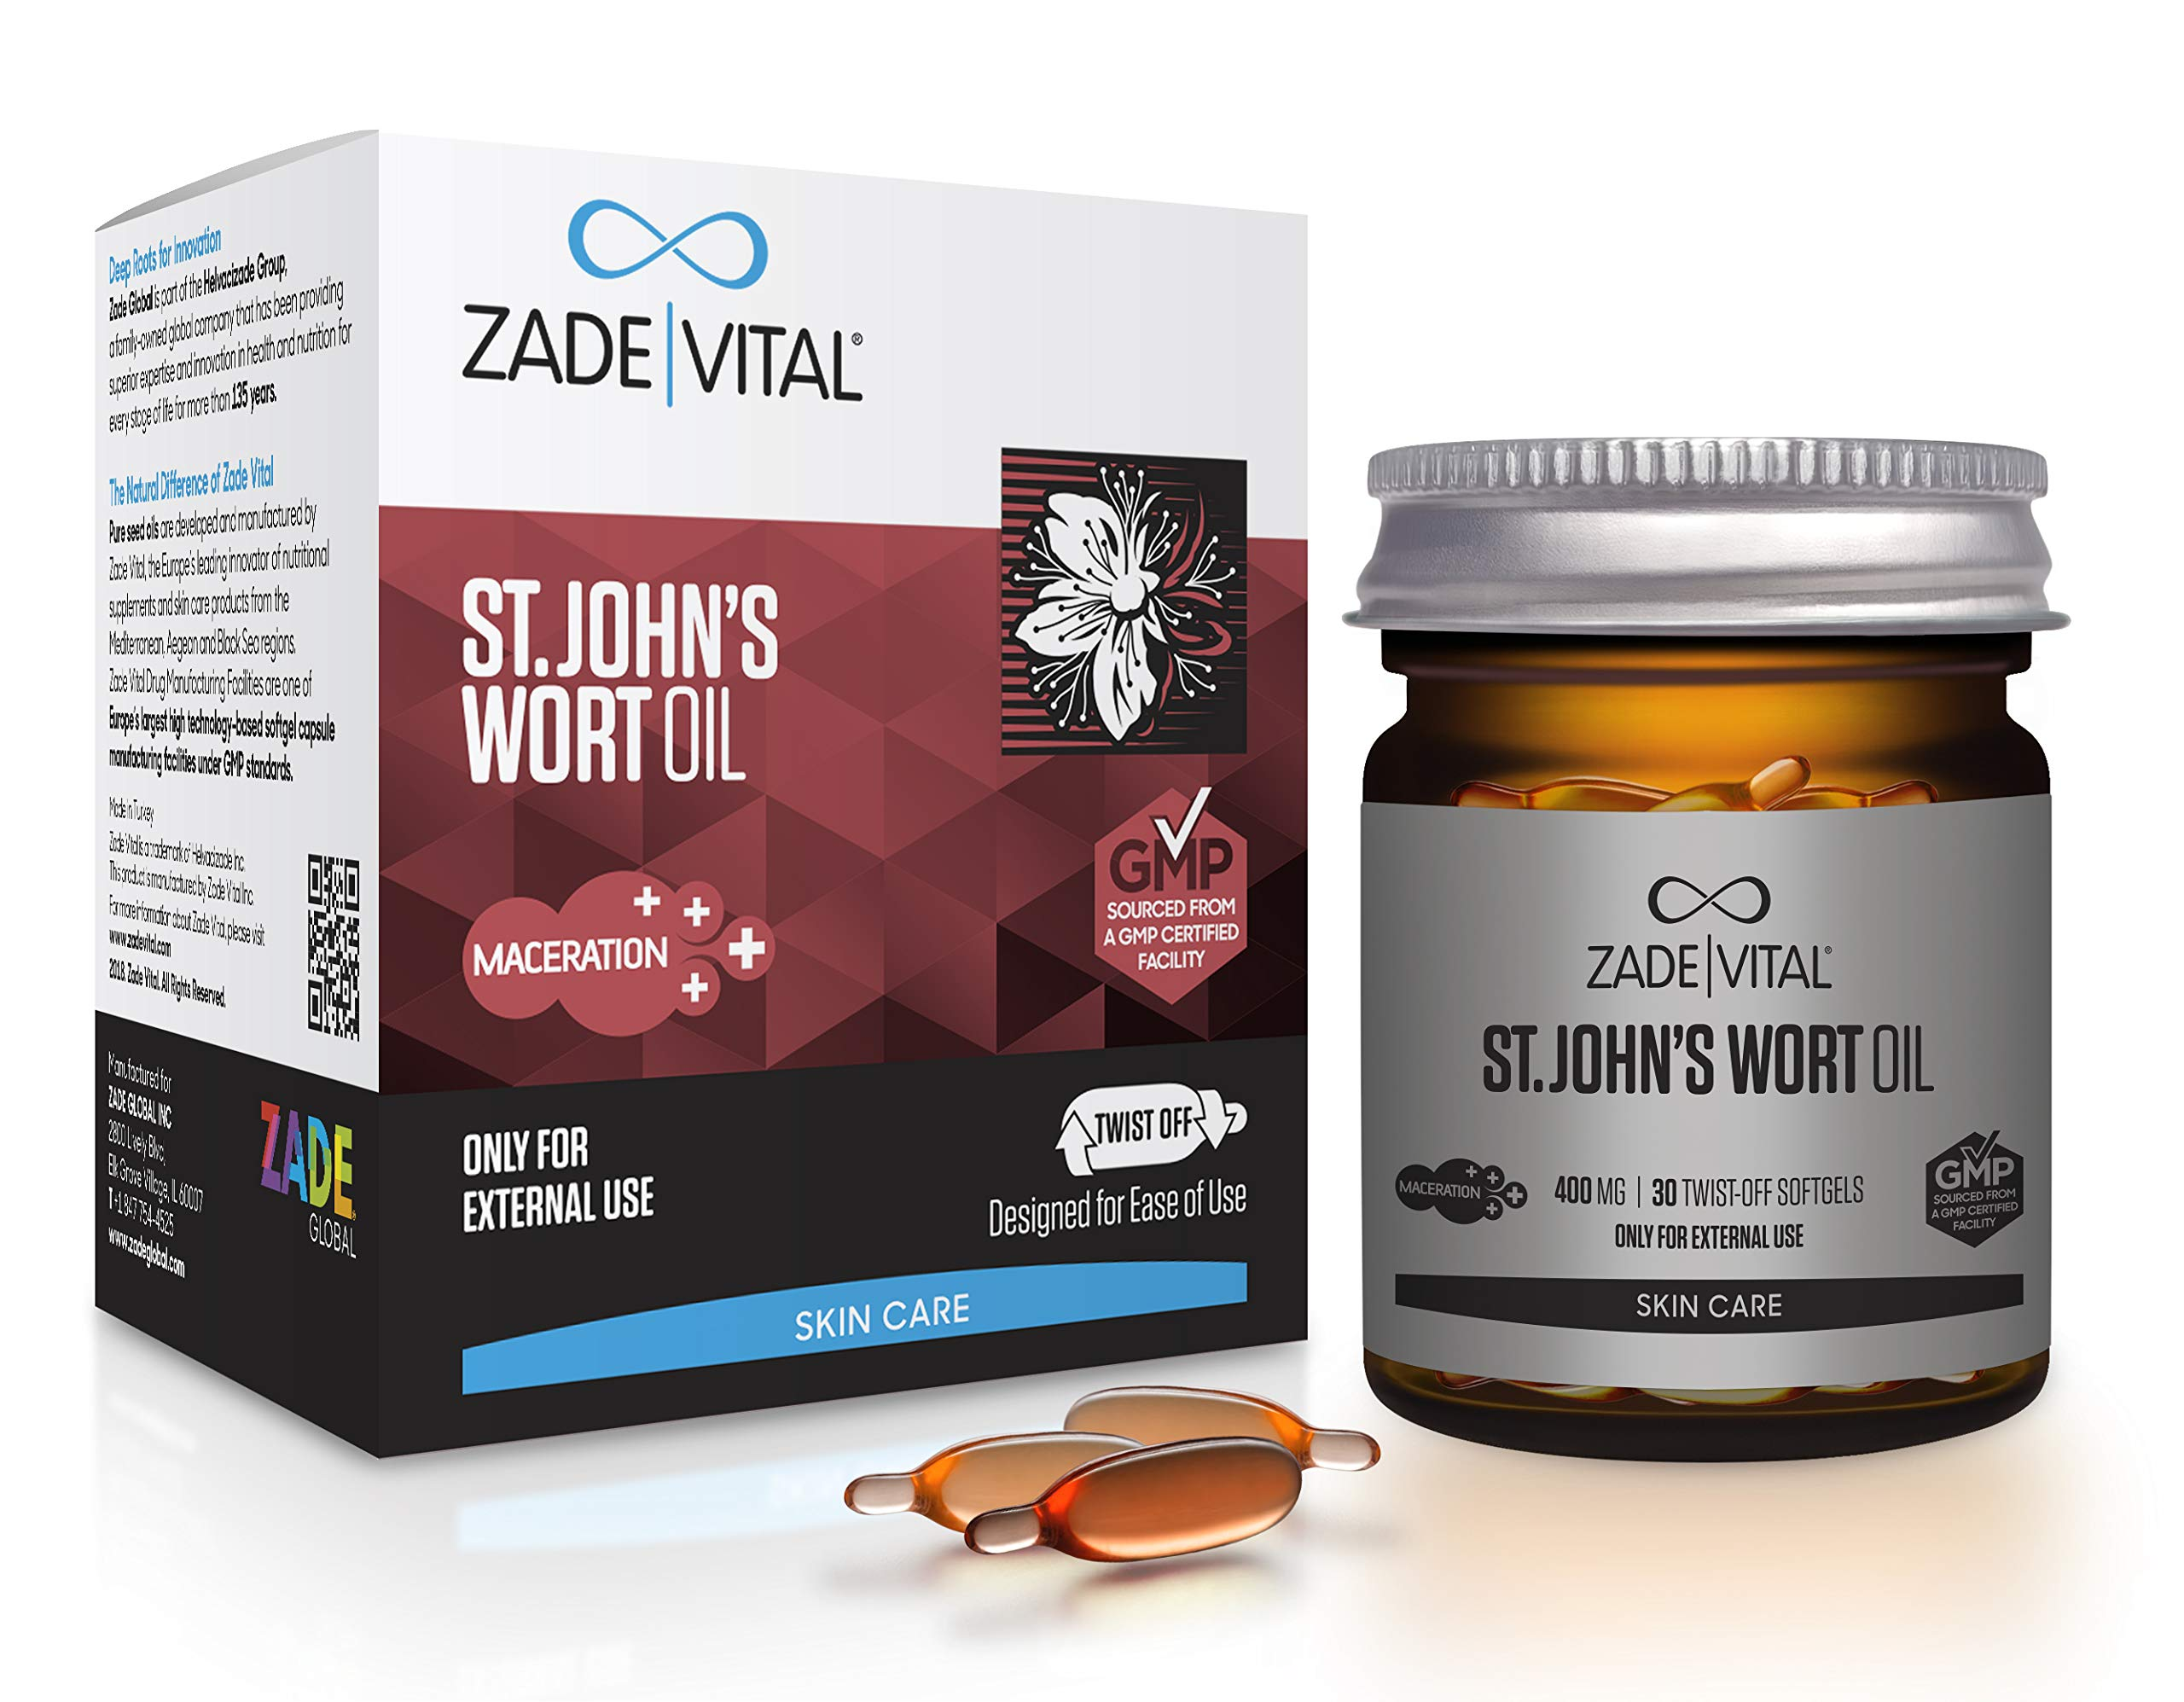 Zade Vital St. John's Wort Oil Supports Damaged Skin & Burn Repair in Twist-Off 30 Softgels, Easy to Use, Hypericum Perforatum Oil, 100% Cold Press, Non GMO, GMP, Maceration, 1 Month Supply